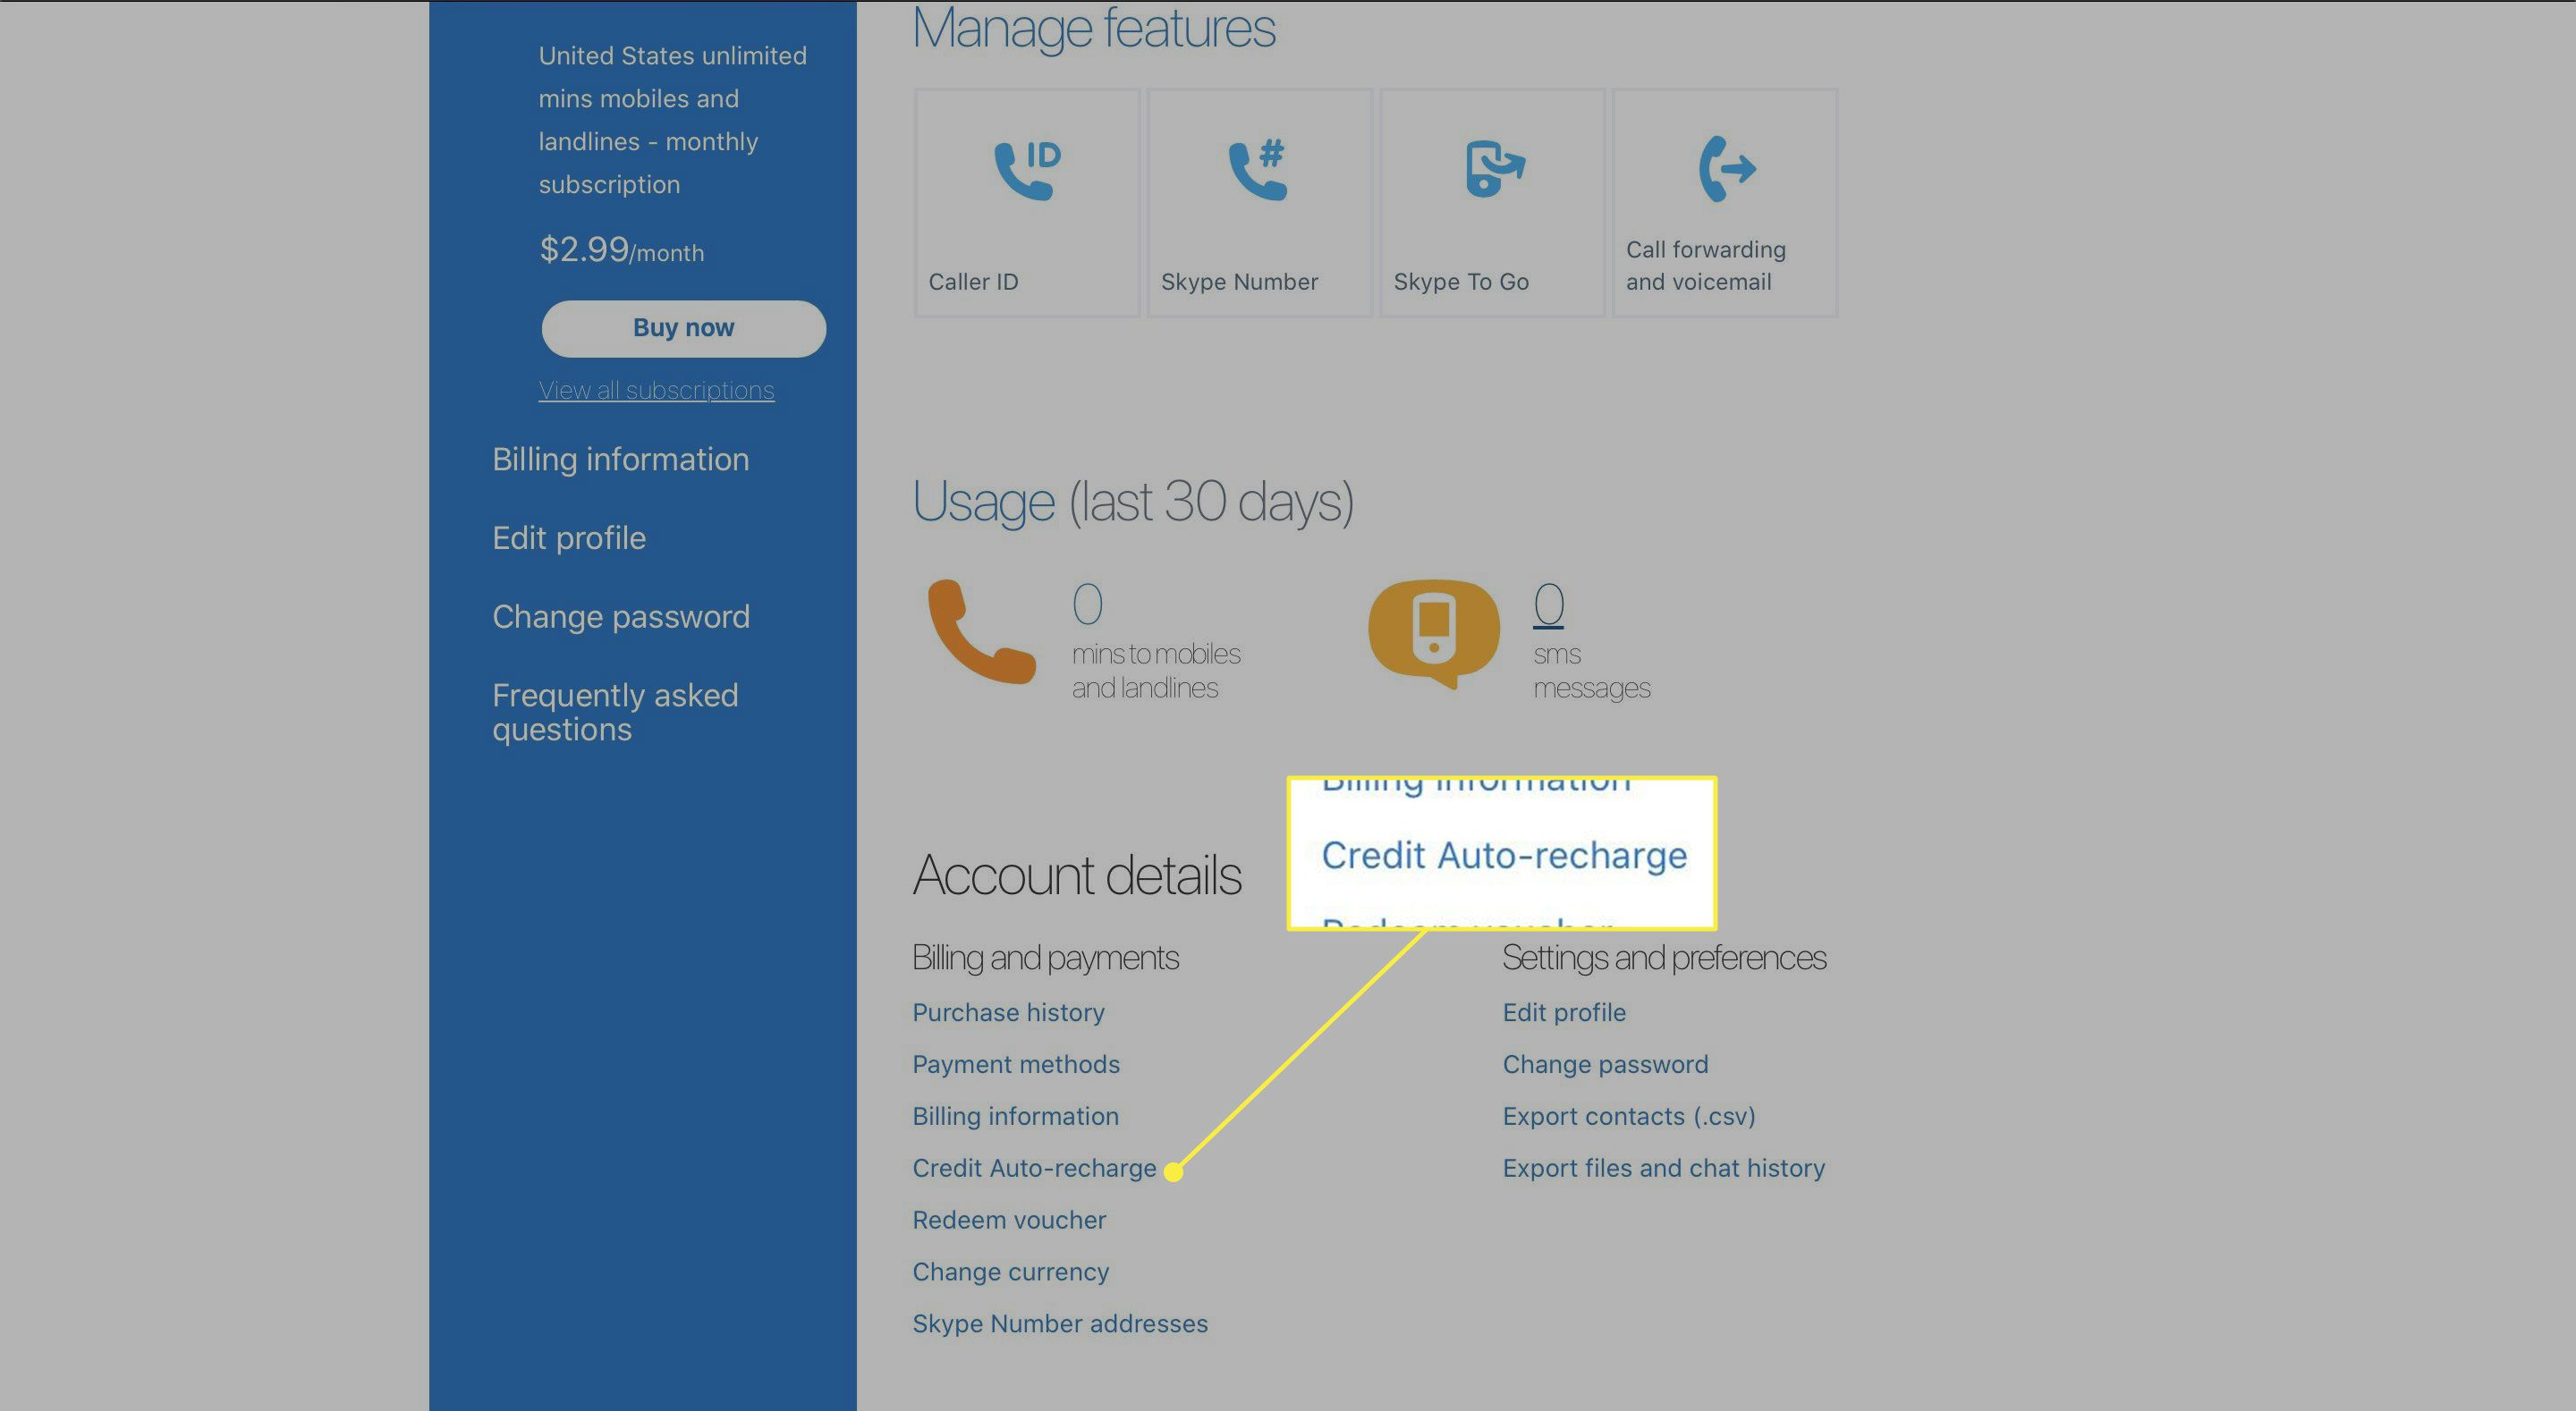 A screenshot of Skype's Account Details page with the Credit Auto-recharge link highlighted